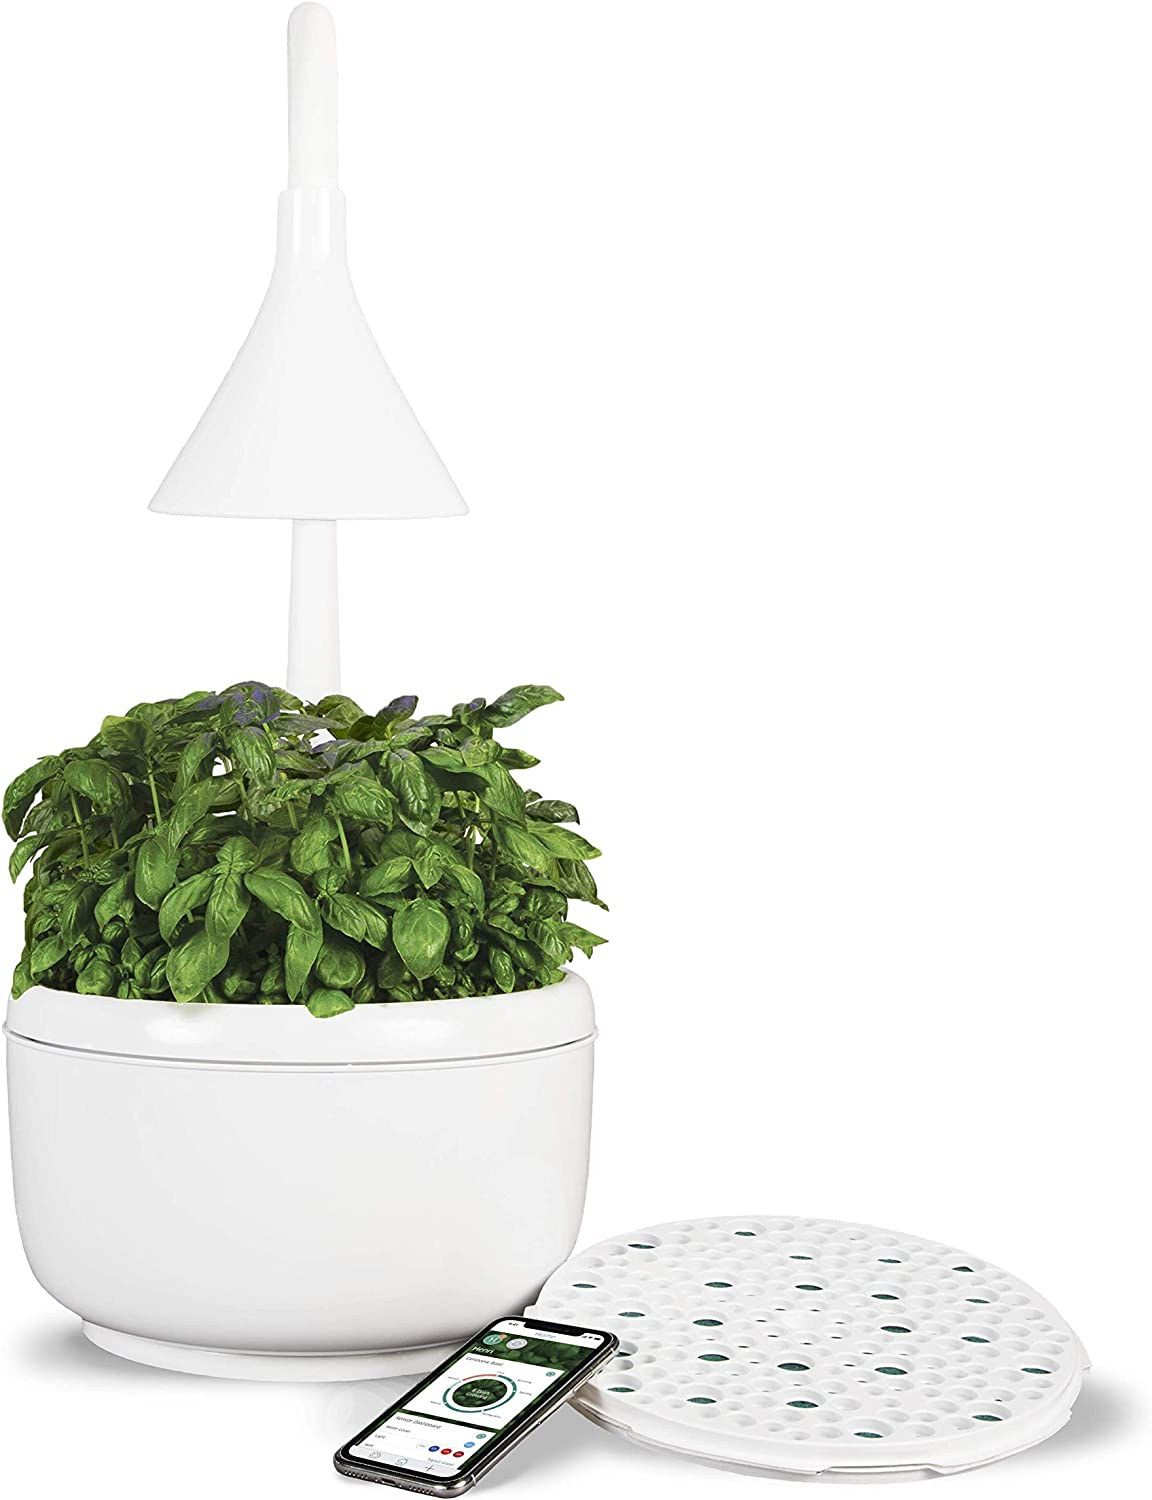 SproutsIO Smart Garden – Soil-Free Connected Indoor Garden – Grow Unlimited Herbs, Greens, Roots & Fruits w/SproutsIOGrow App & Membership – Organic, Non-GMO - Compostable Seed Refills – Water & Wi-Fi